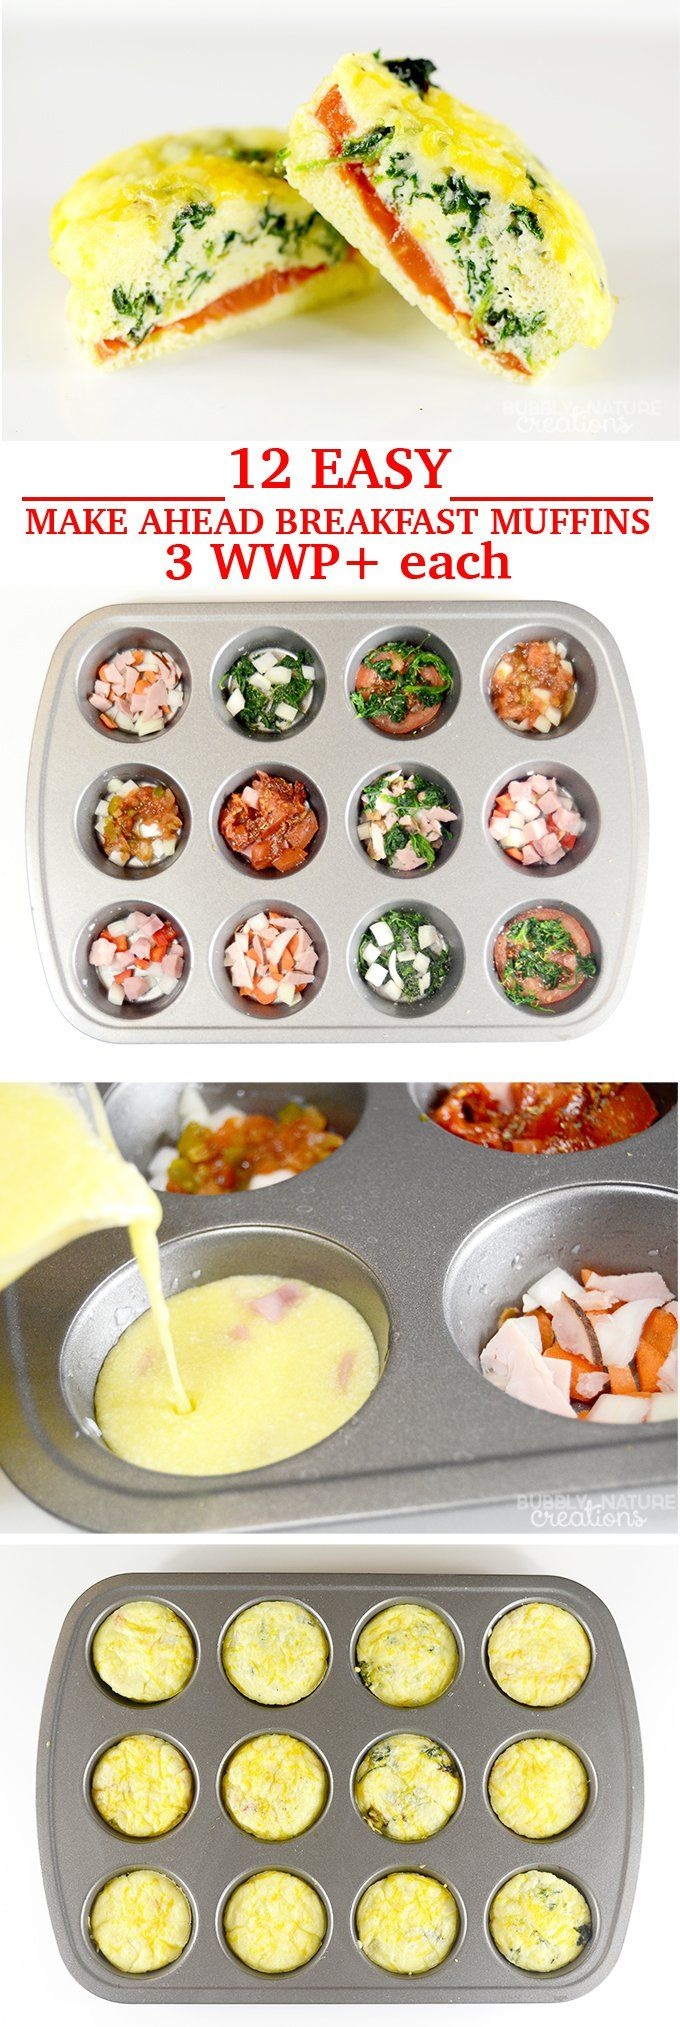 12 Easy Make Ahead Breakfast Muffins! 3WWP+